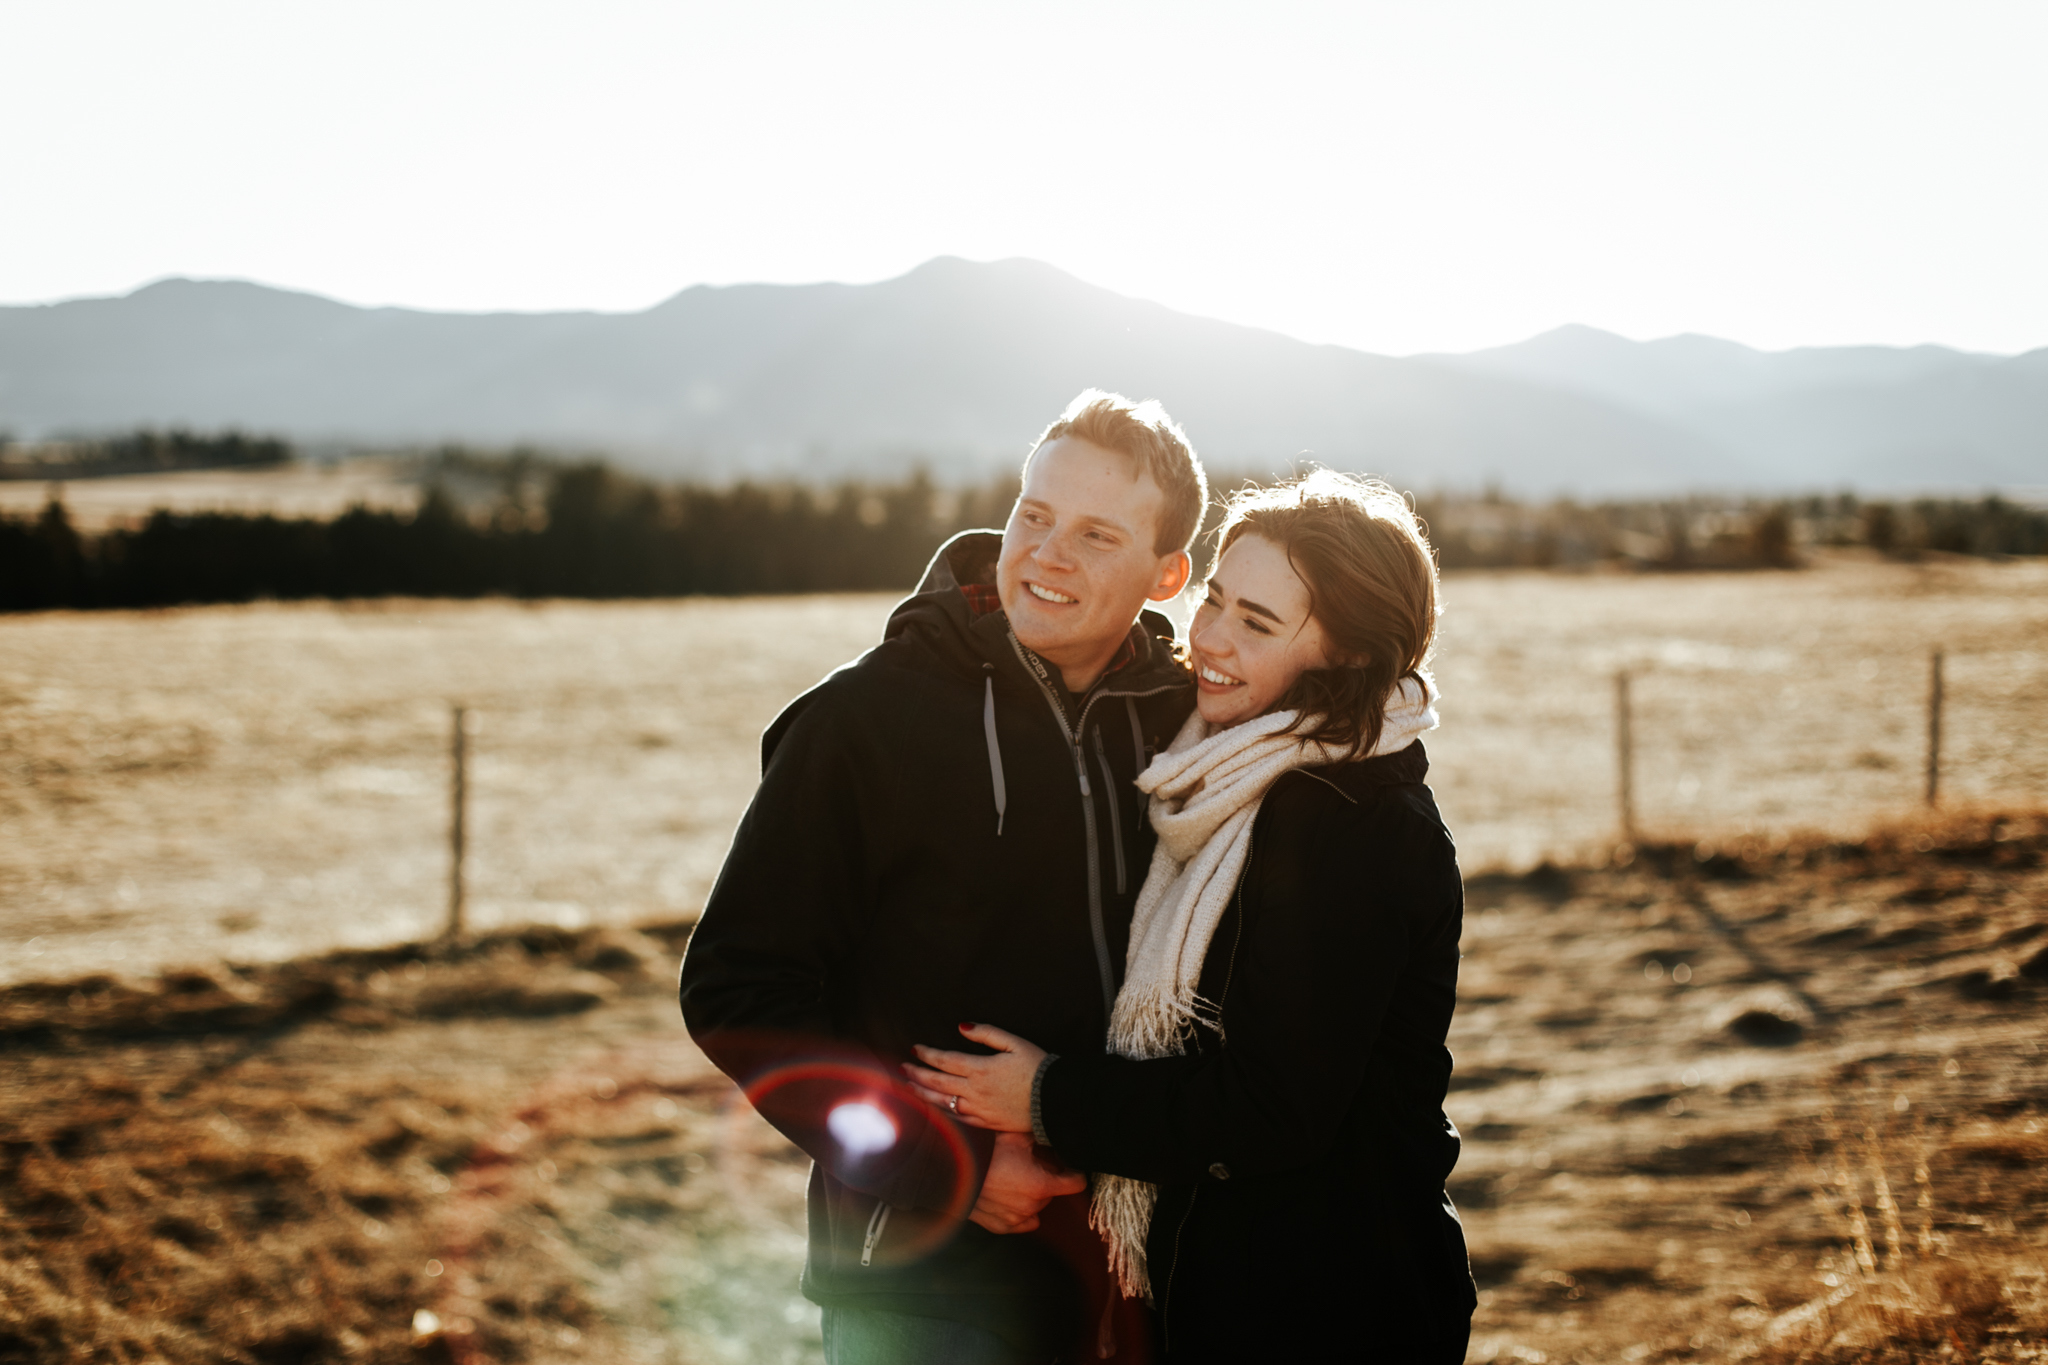 lethbridge-photographer-love-and-be-loved-photography-lundbreck-falls-engagement-clarissa-clayton-picture-image-photo--47.jpg